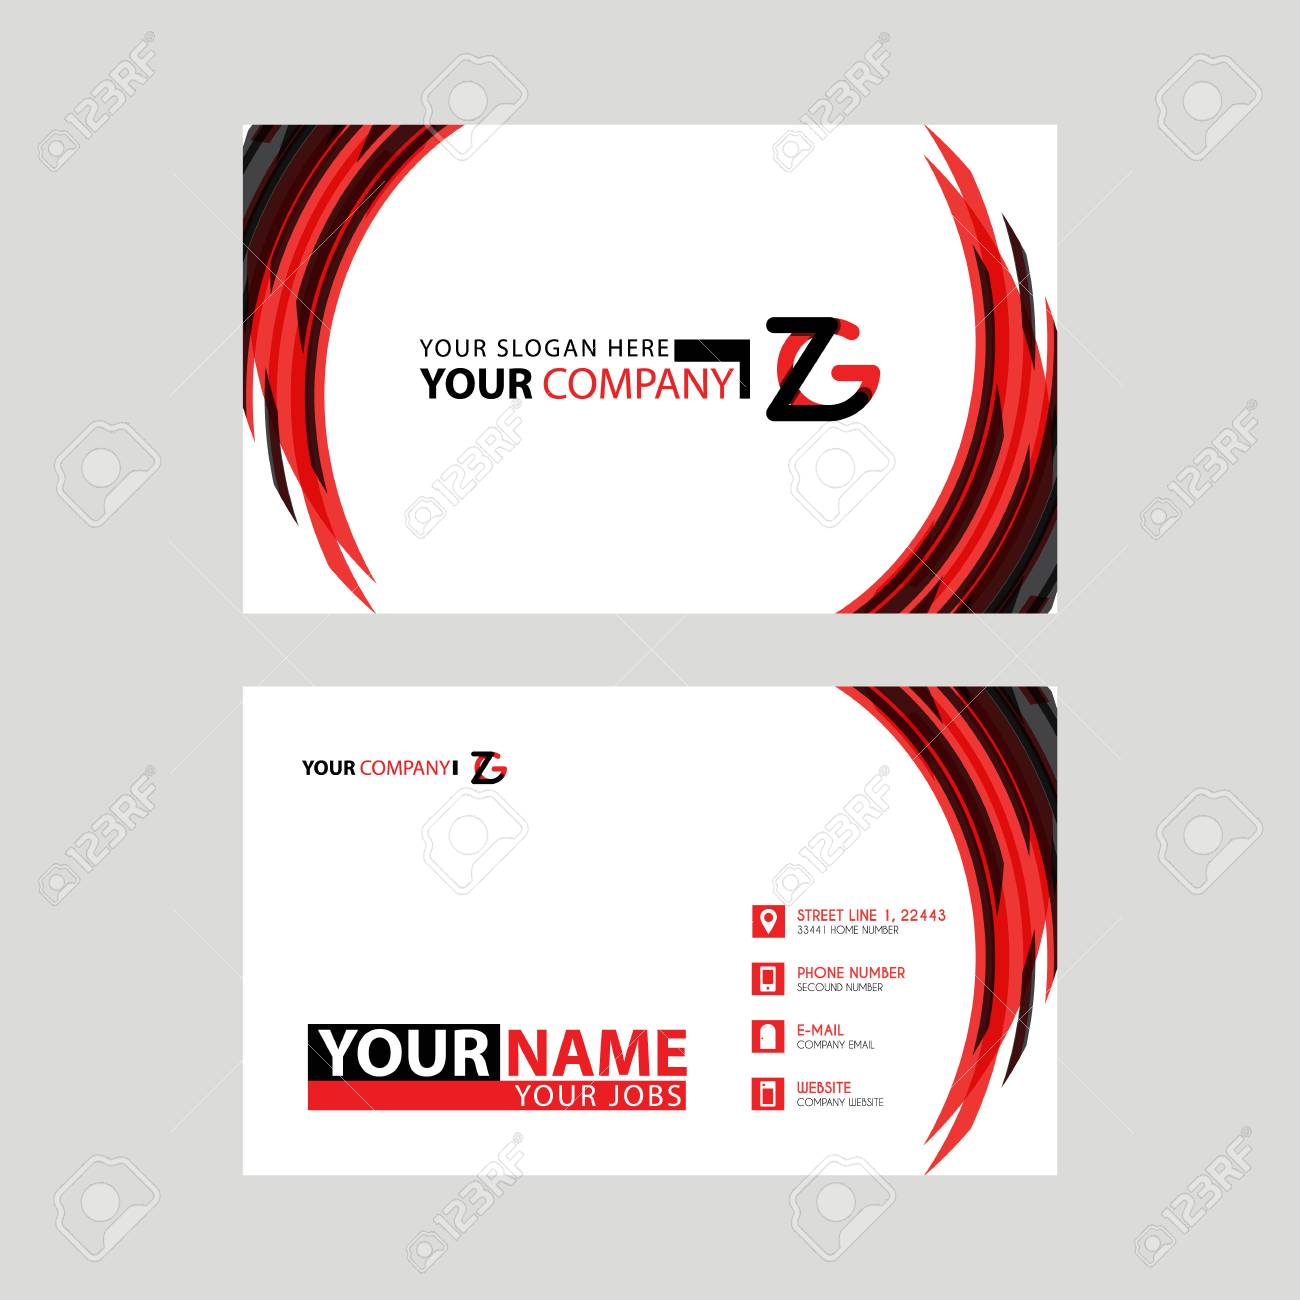 Modern business card templates with zg logo letter and horizontal modern business card templates with zg logo letter and horizontal design and red and black wajeb Gallery